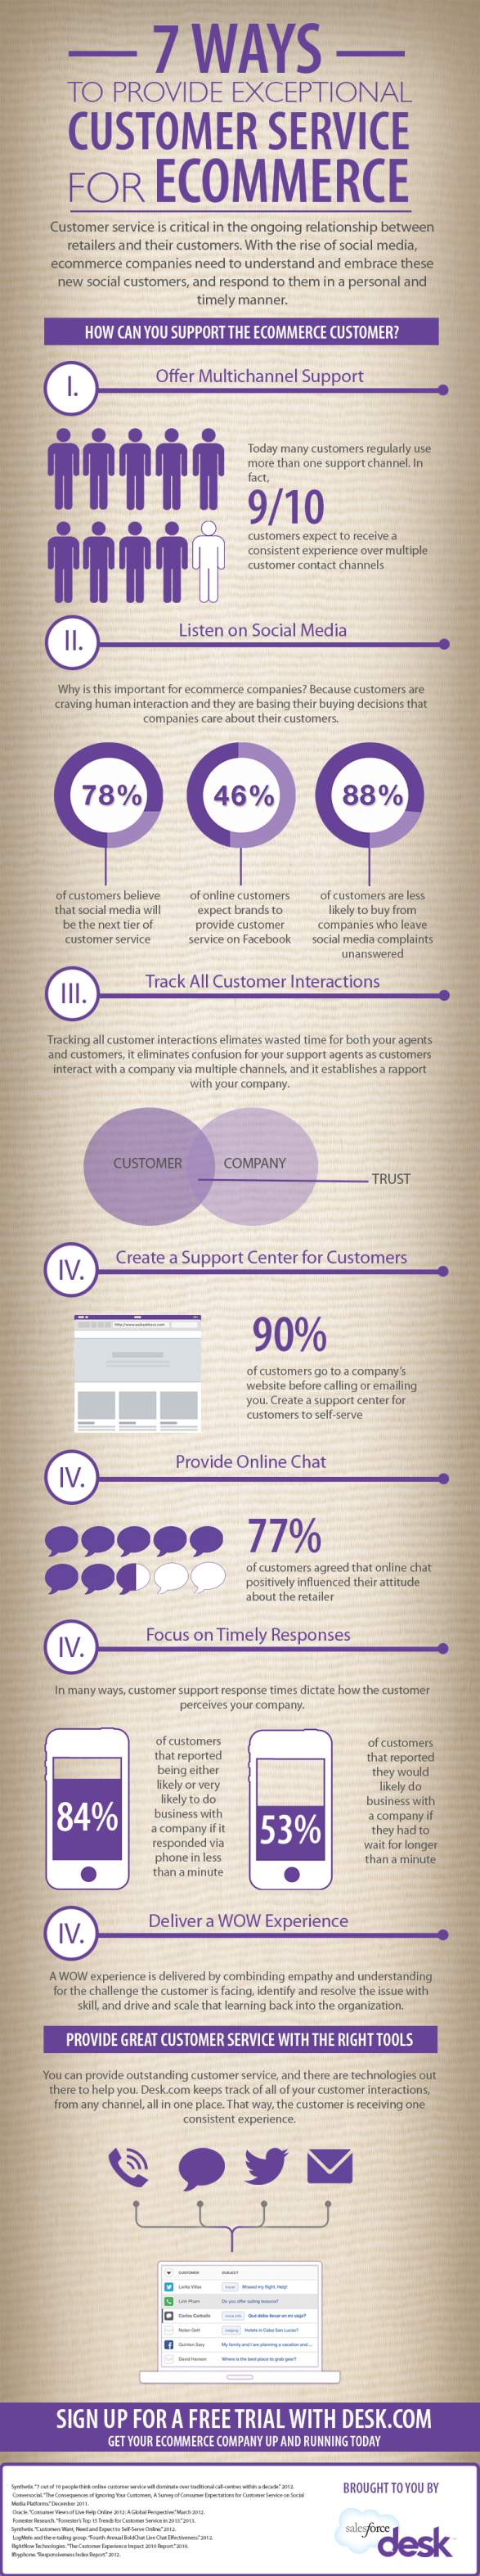 How to Provide Customer Service for Ecommerce